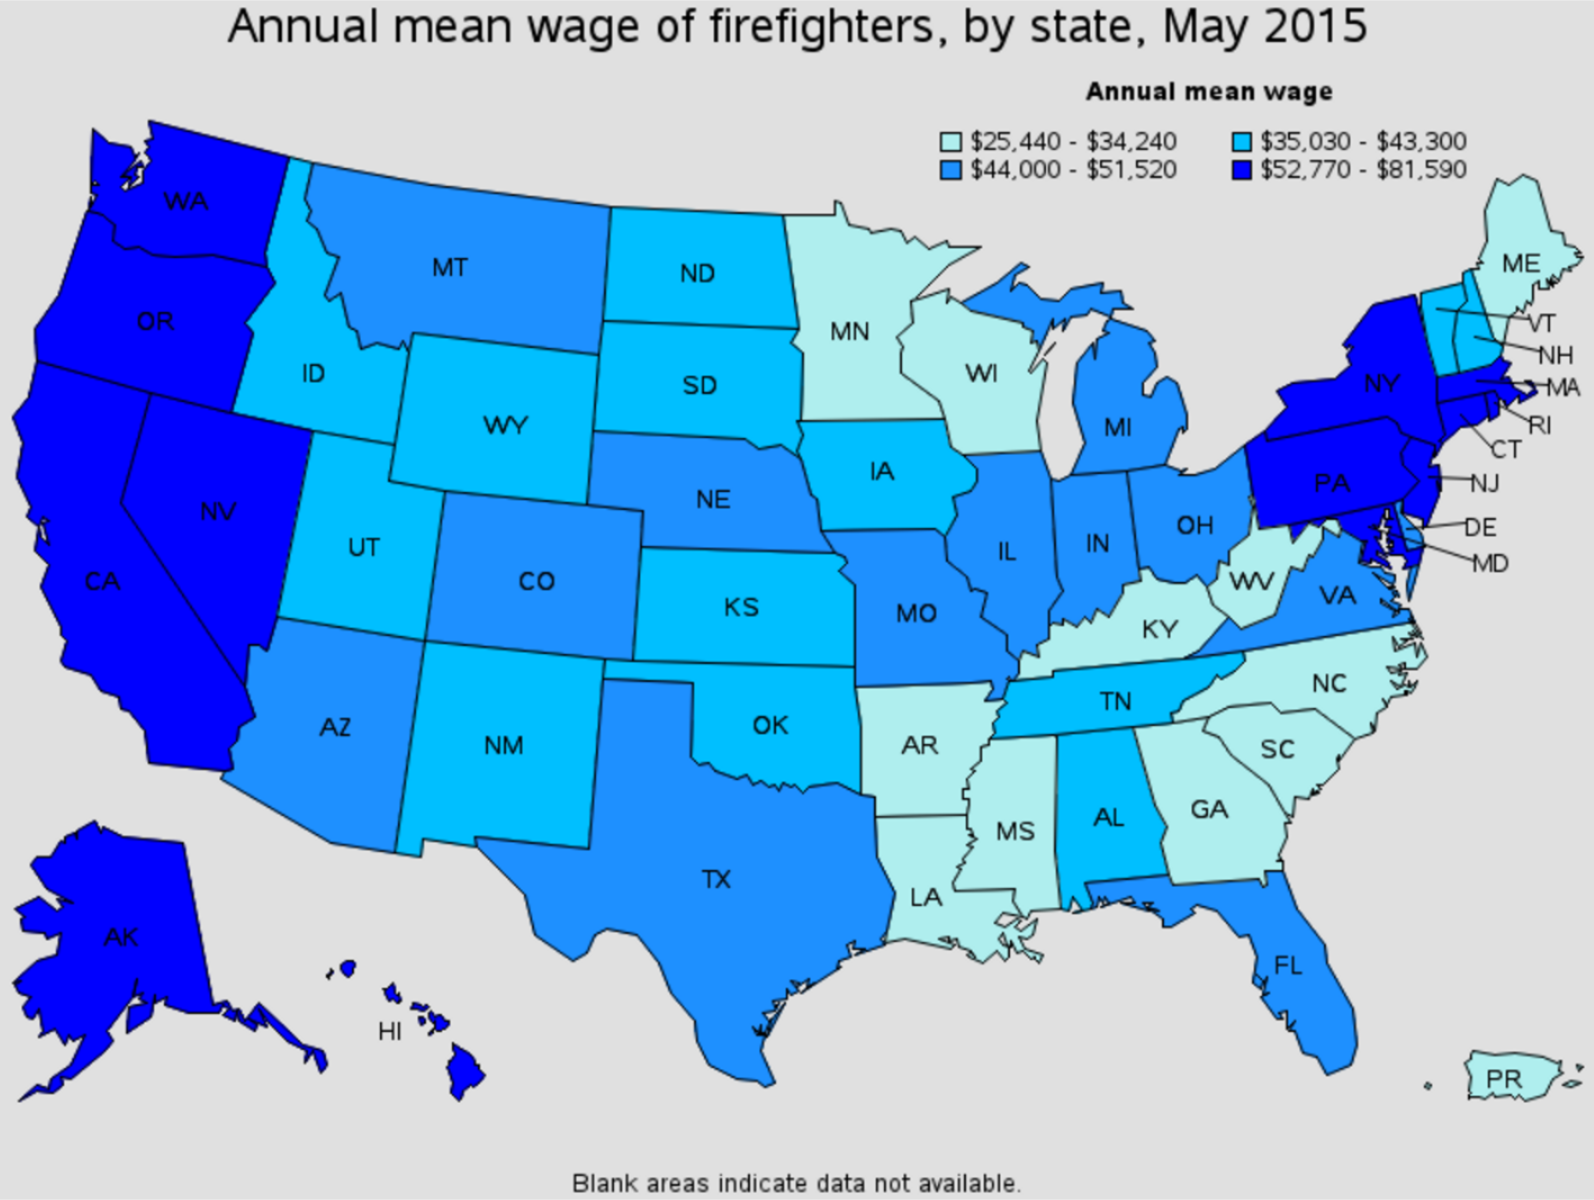 firefighter average salary by state Madrid New York